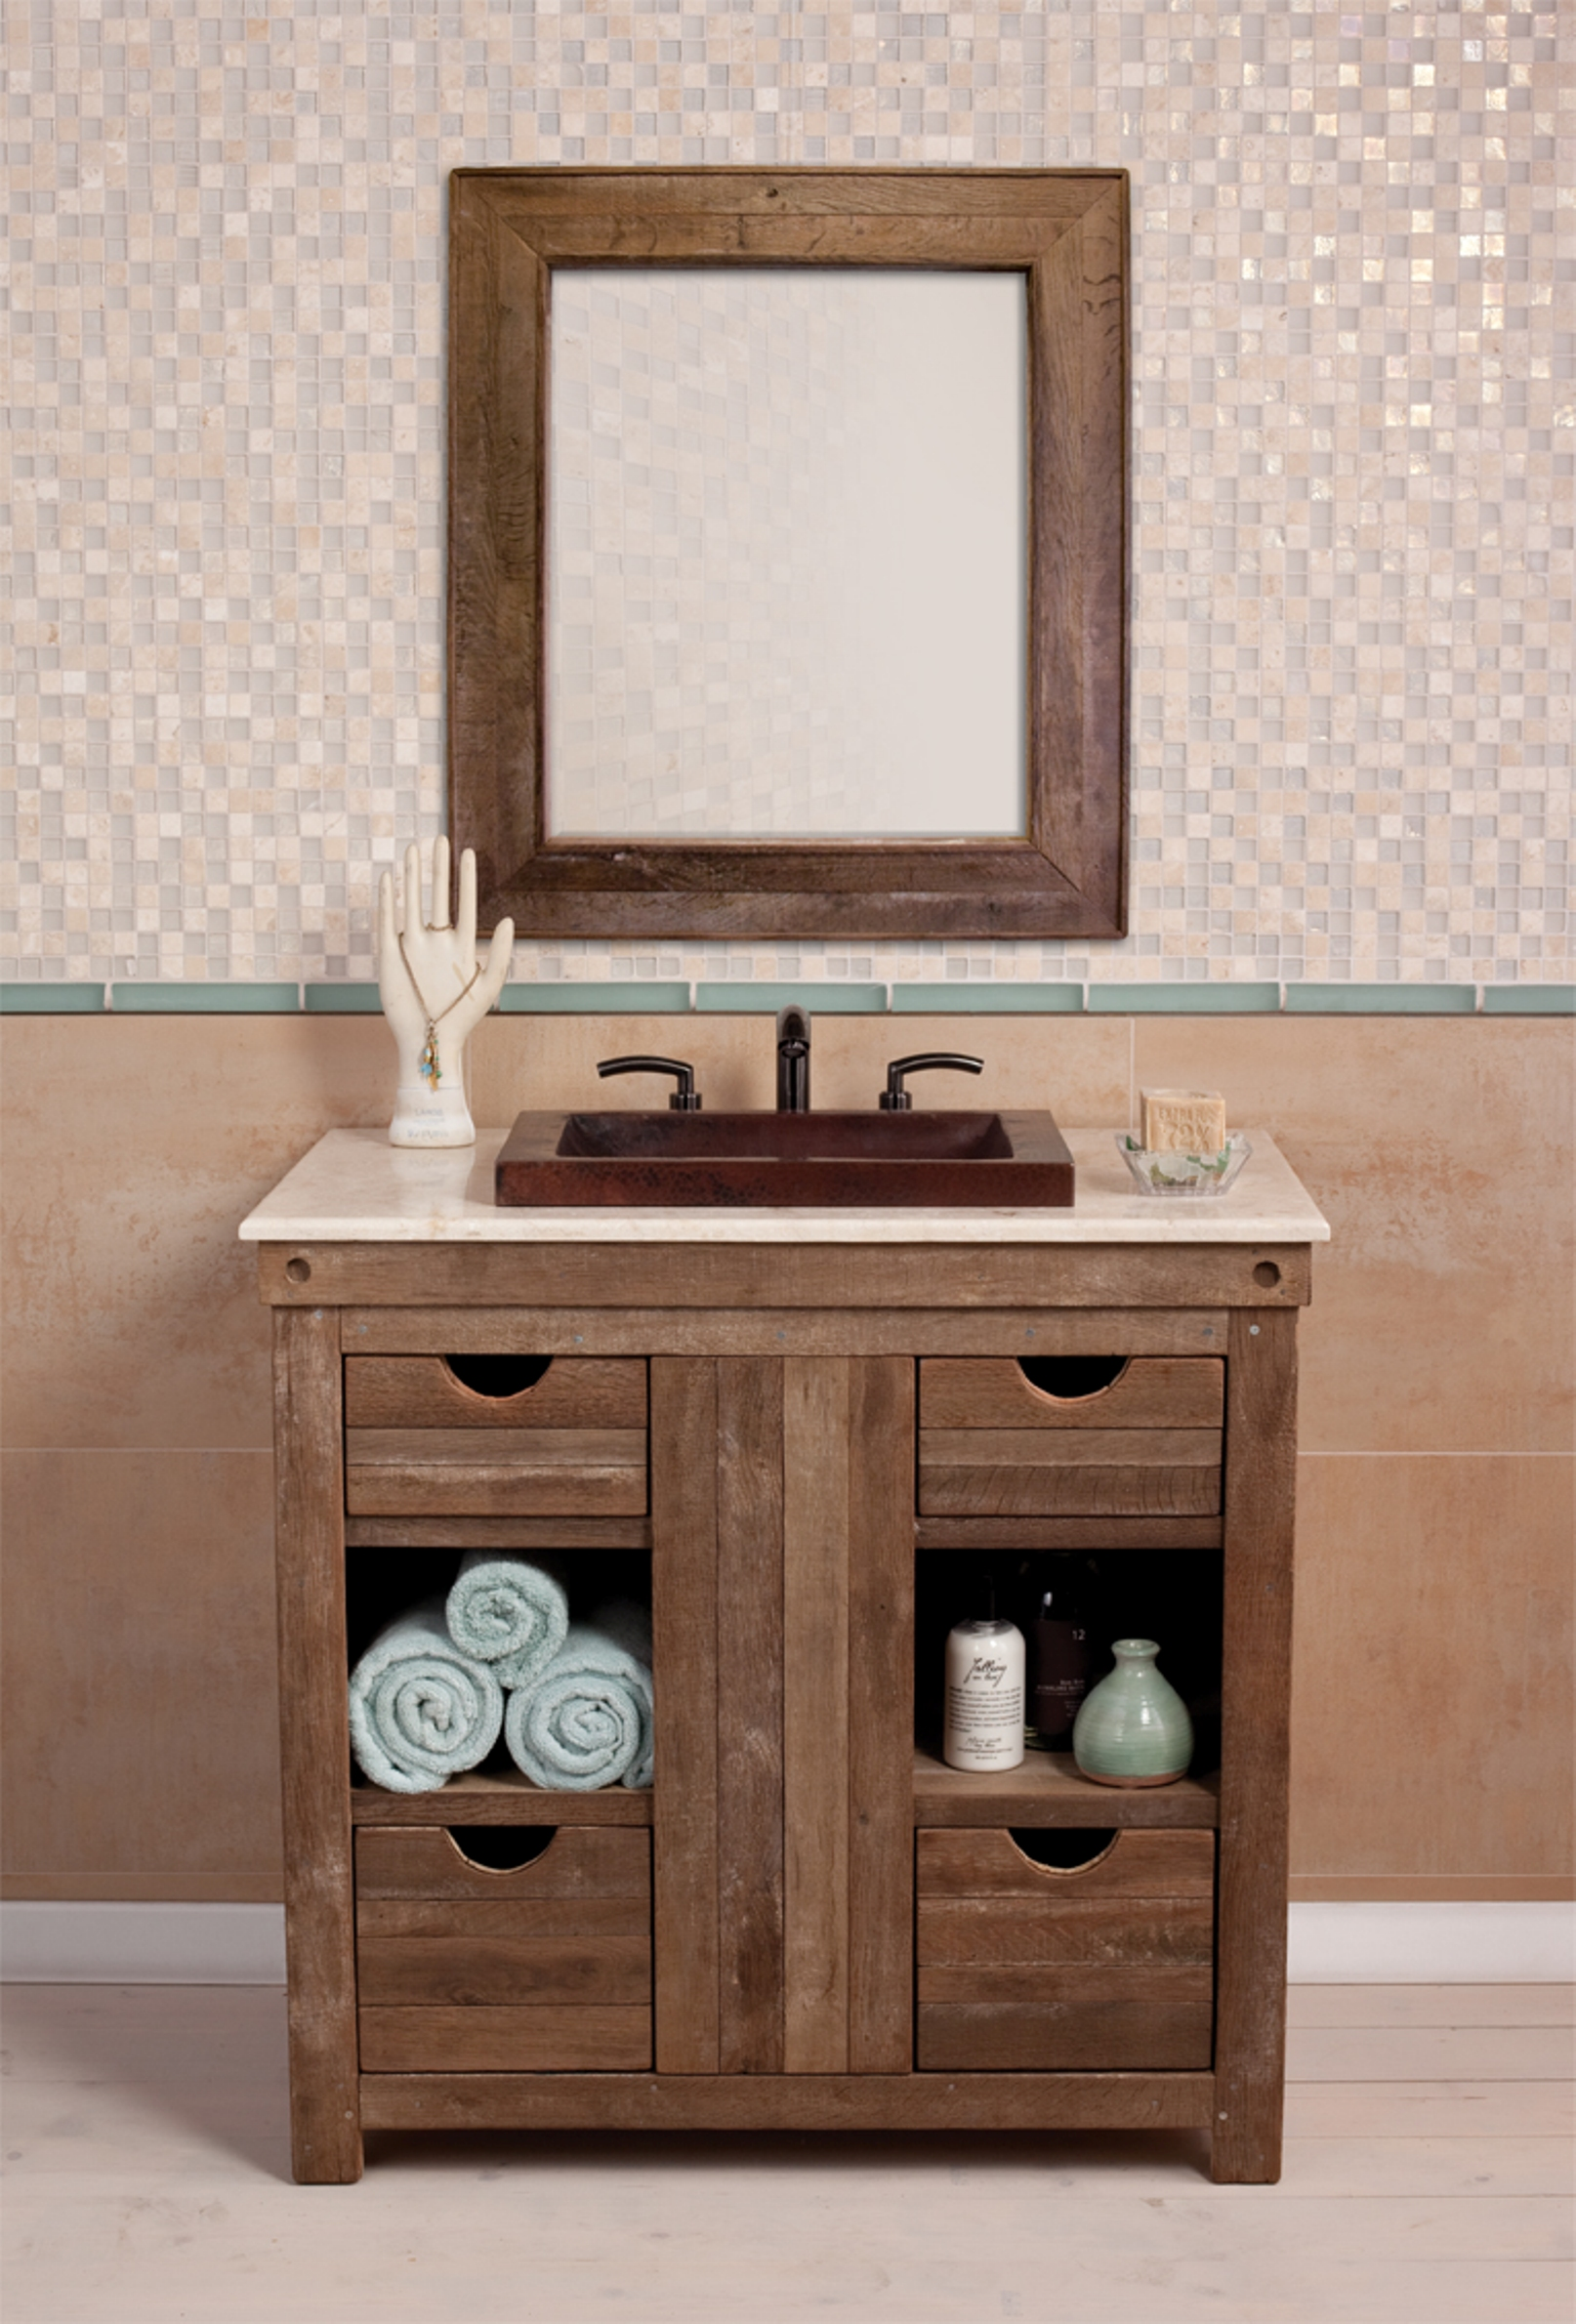 Less the brown sink - but we both like the wooden vanity.  Rustic